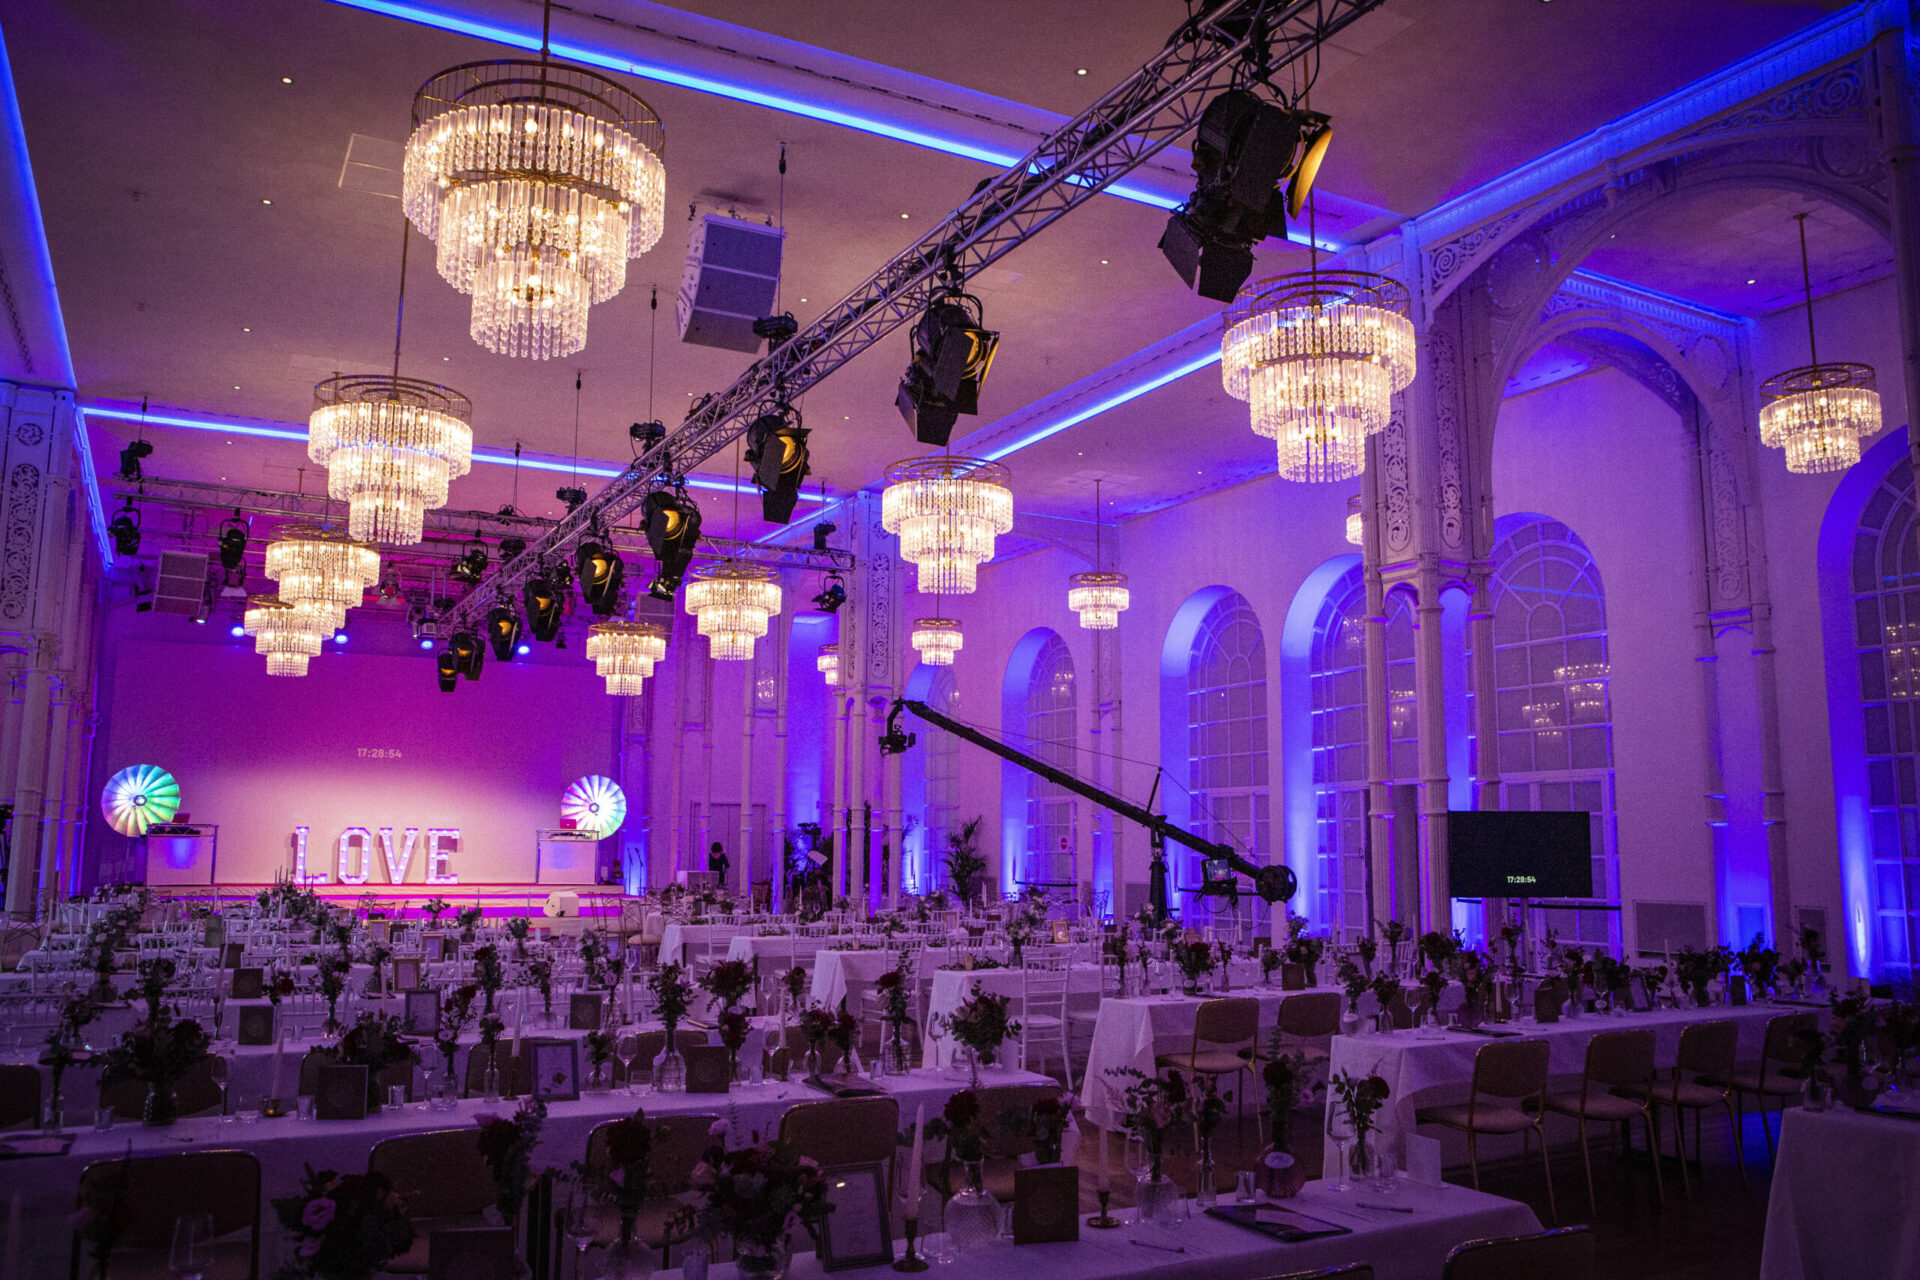 Wedding King Awards 2020 Germany